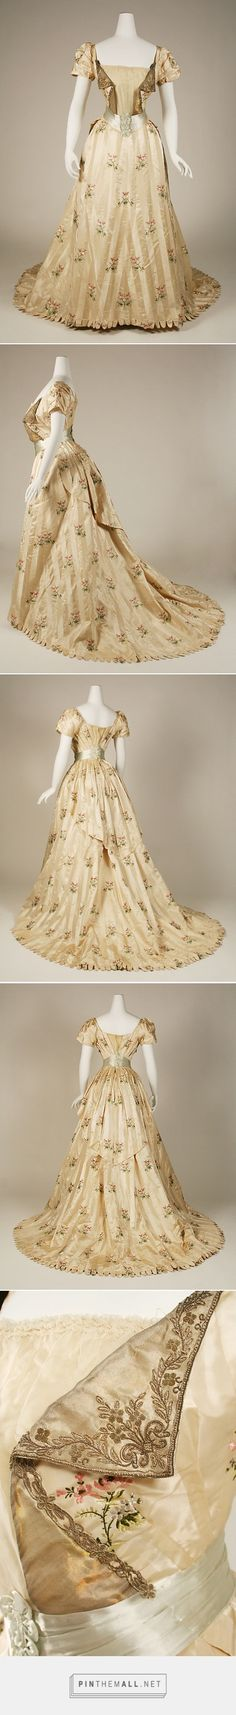 Evening dress by House of Worth 1905-08 French | The Metropolitan Museum of Art